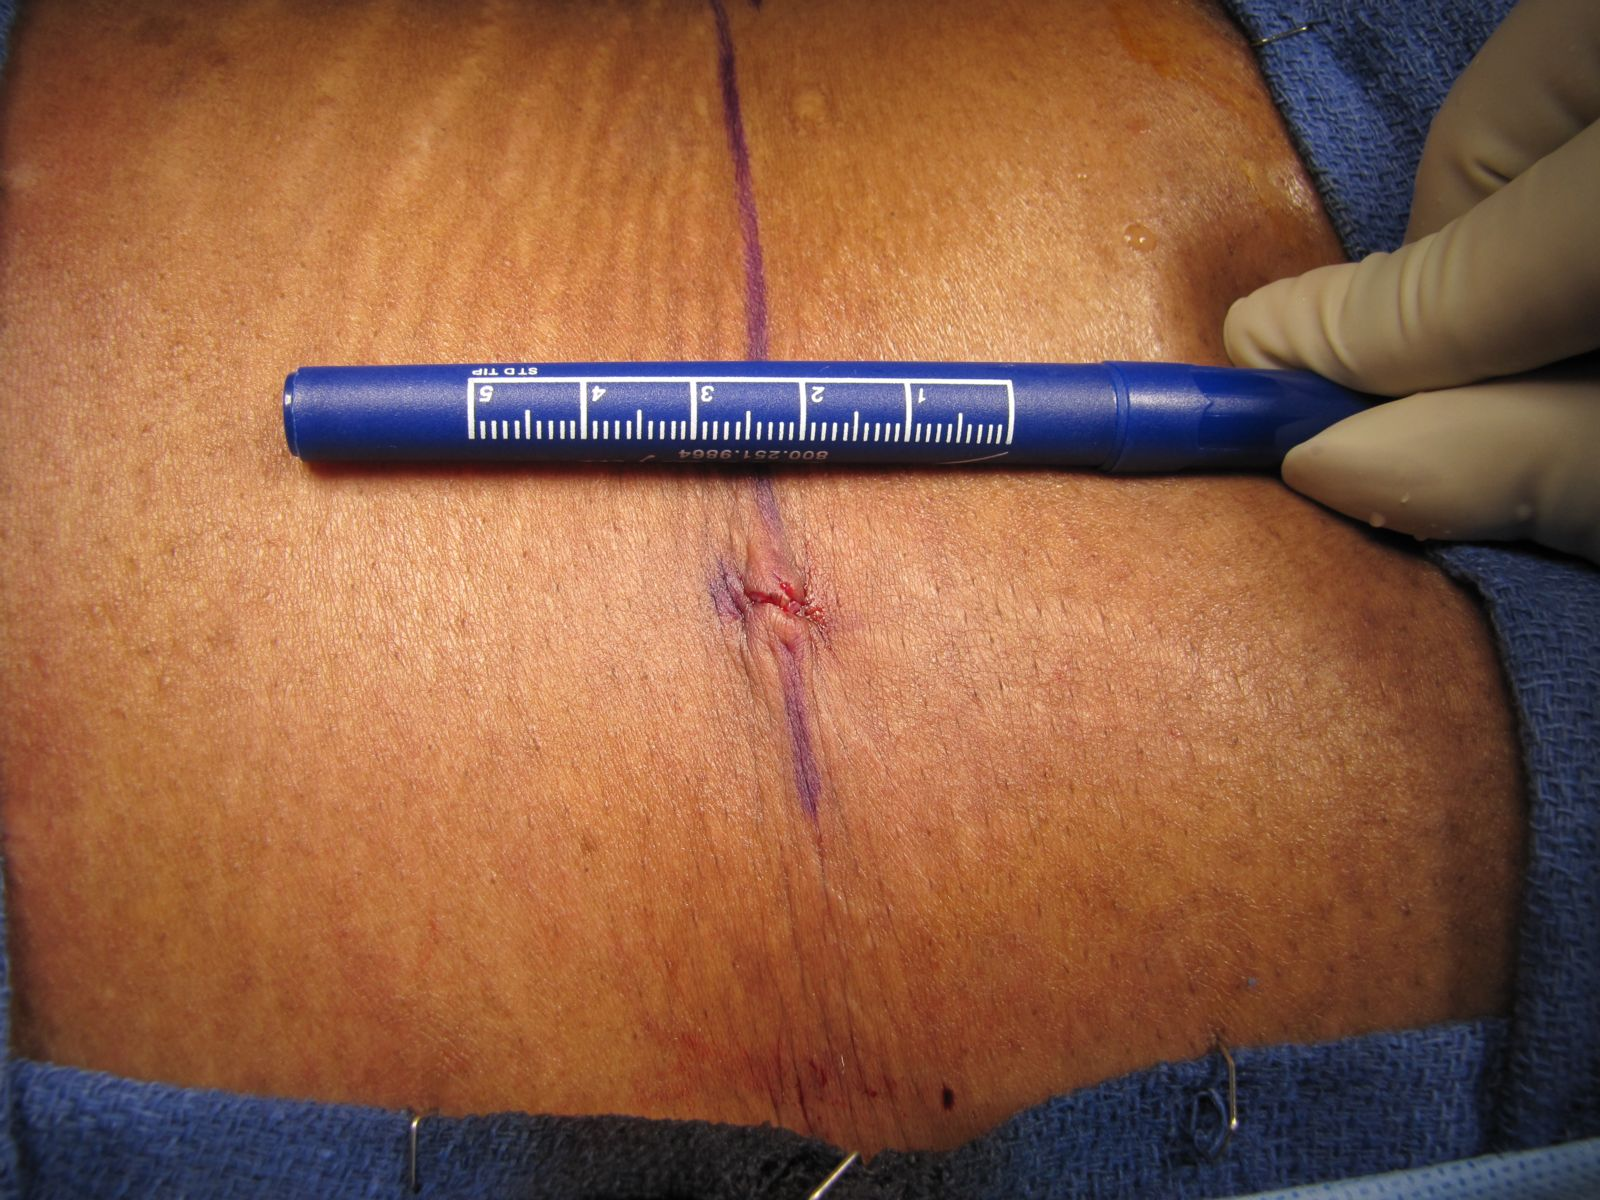 Incision site immediately after a recent endoscopic discectomy